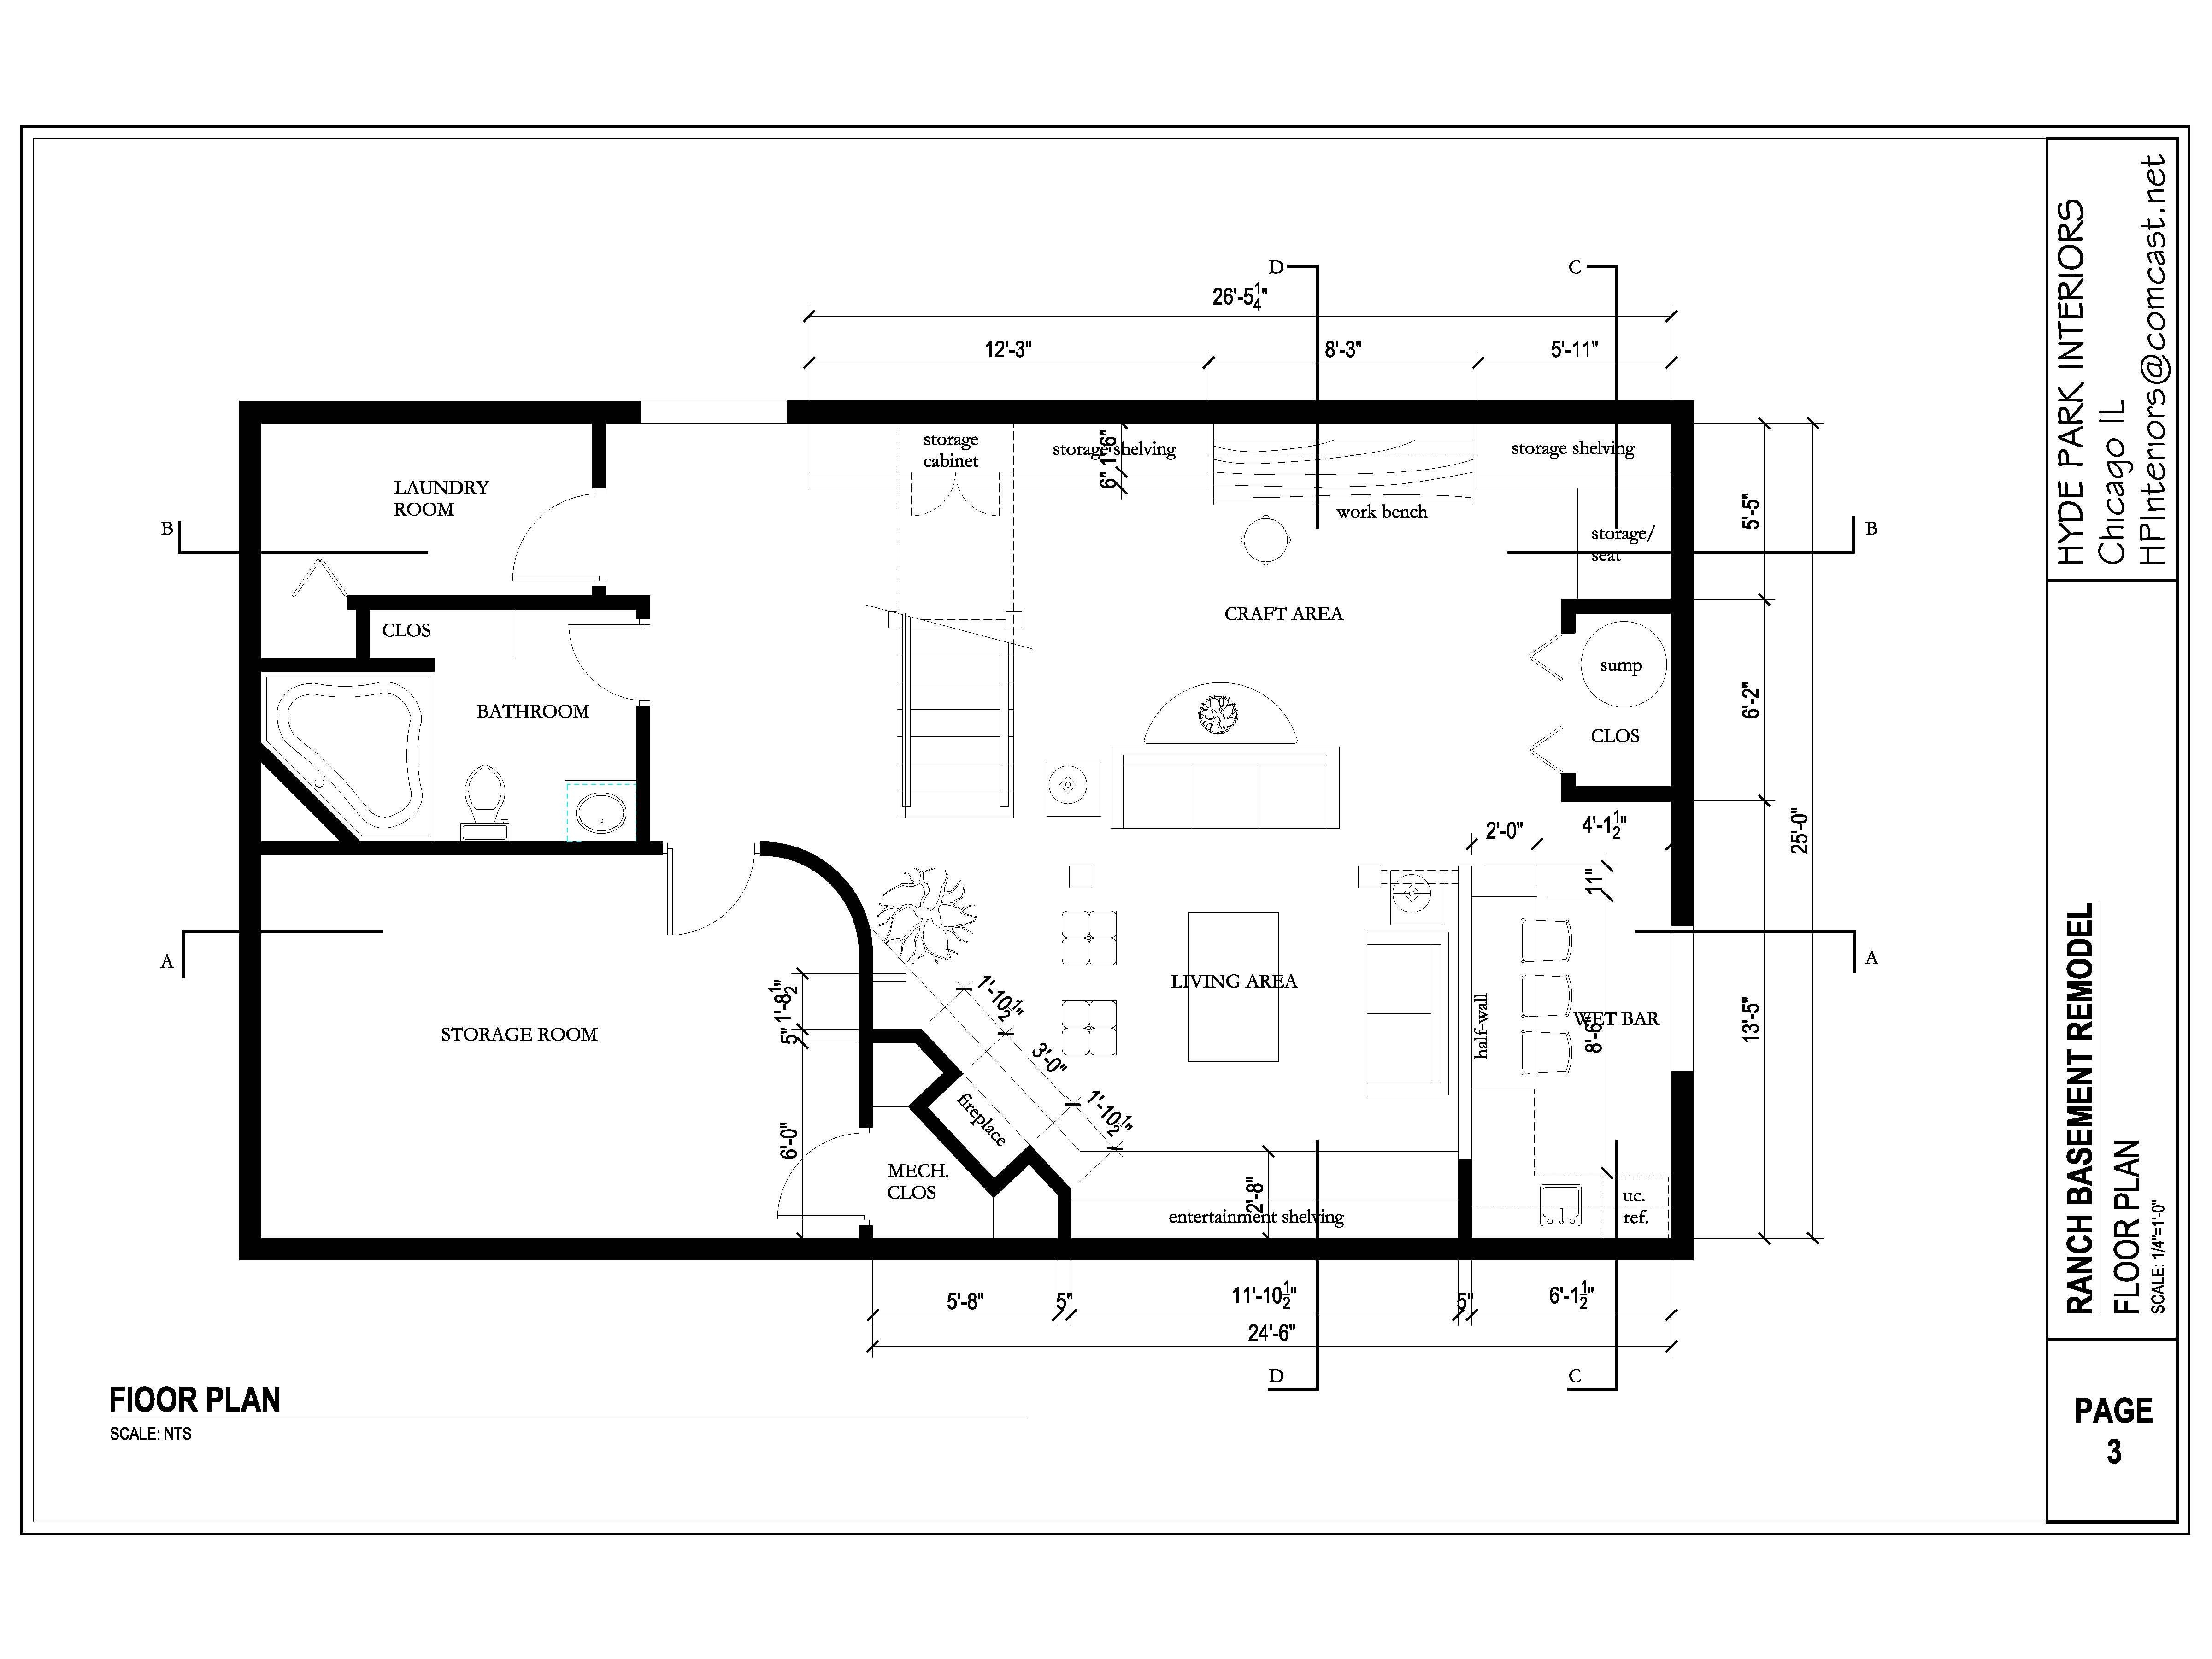 Captivating Basement Layout Design With Home Remodel Ideas With